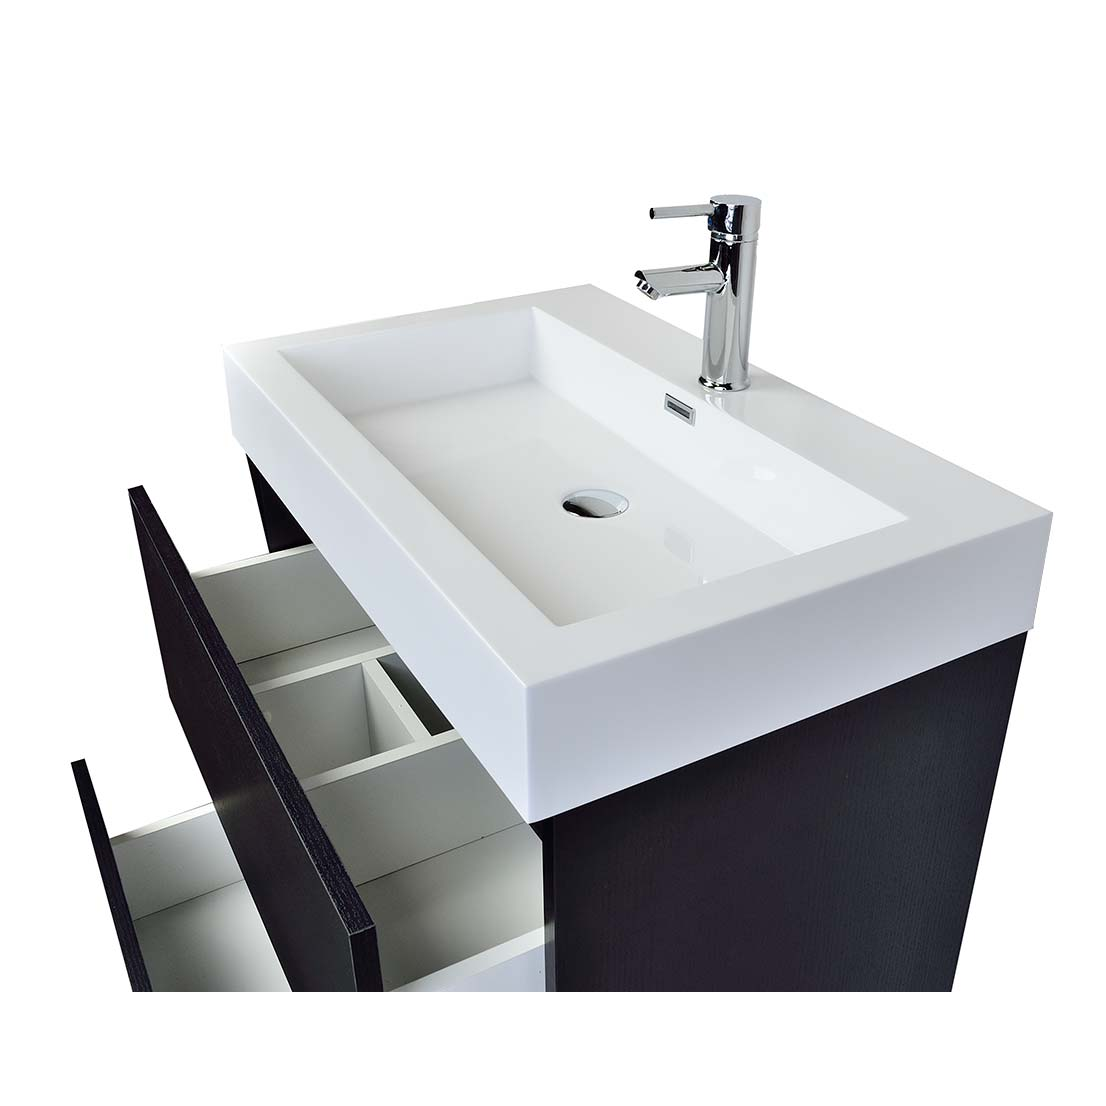 Contemporary Bathroom Vanity Black TNLYBK Conceptbathscom - 30 inch contemporary bathroom vanity